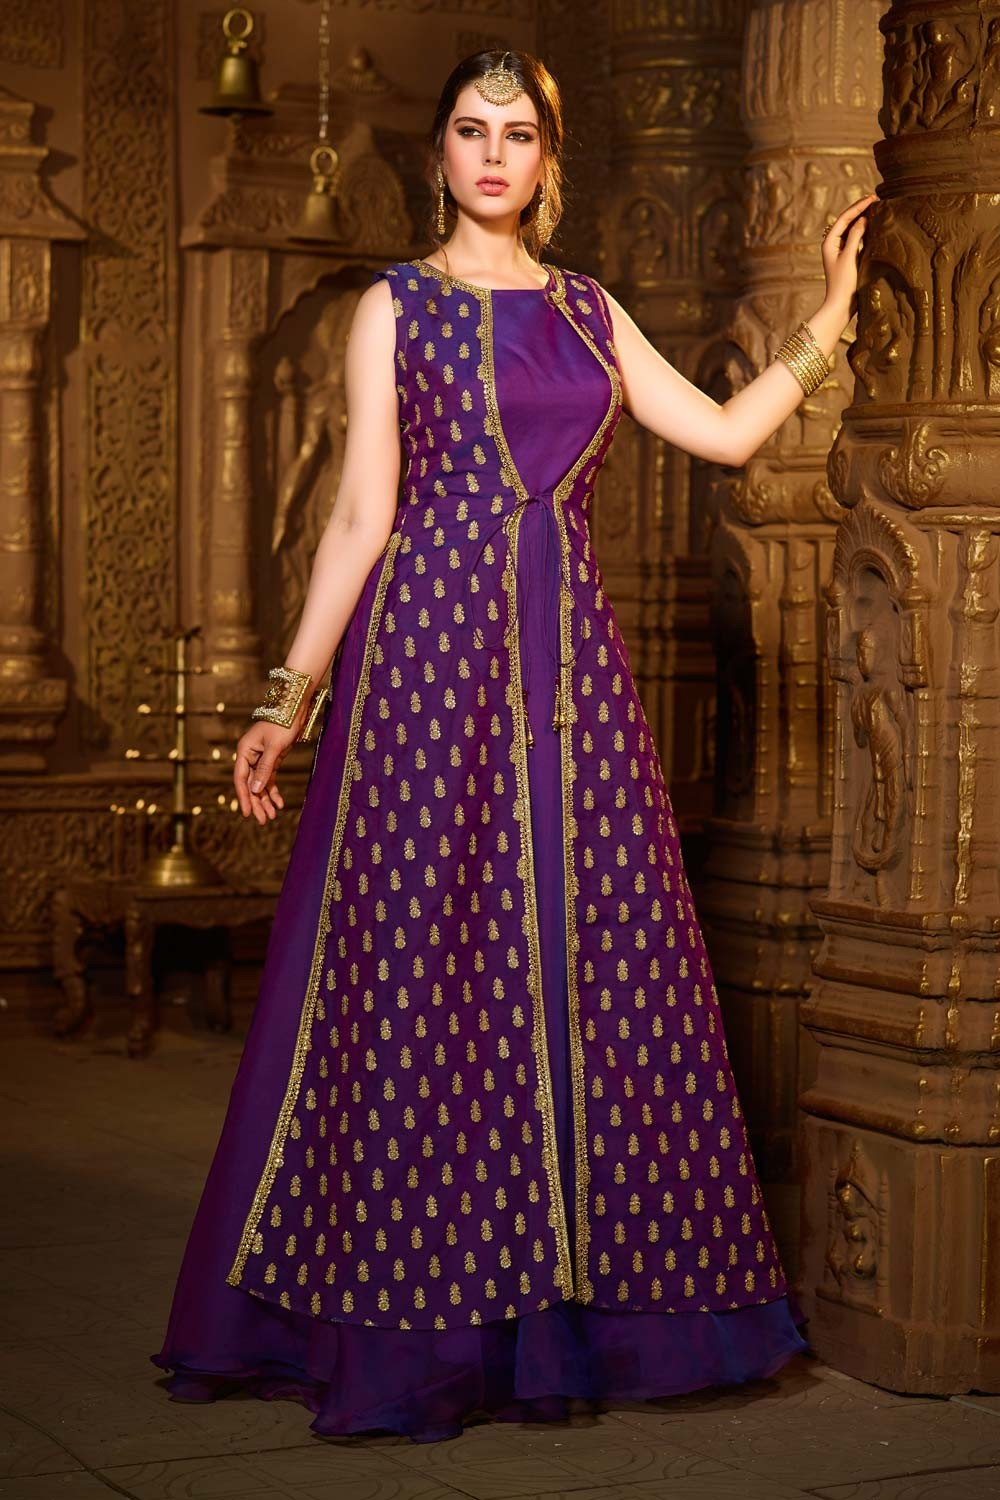 Paaneri Desinger Puple Color Heavy Embroidey Zari Work With Silk Long Gown -SKU Code-18122187902